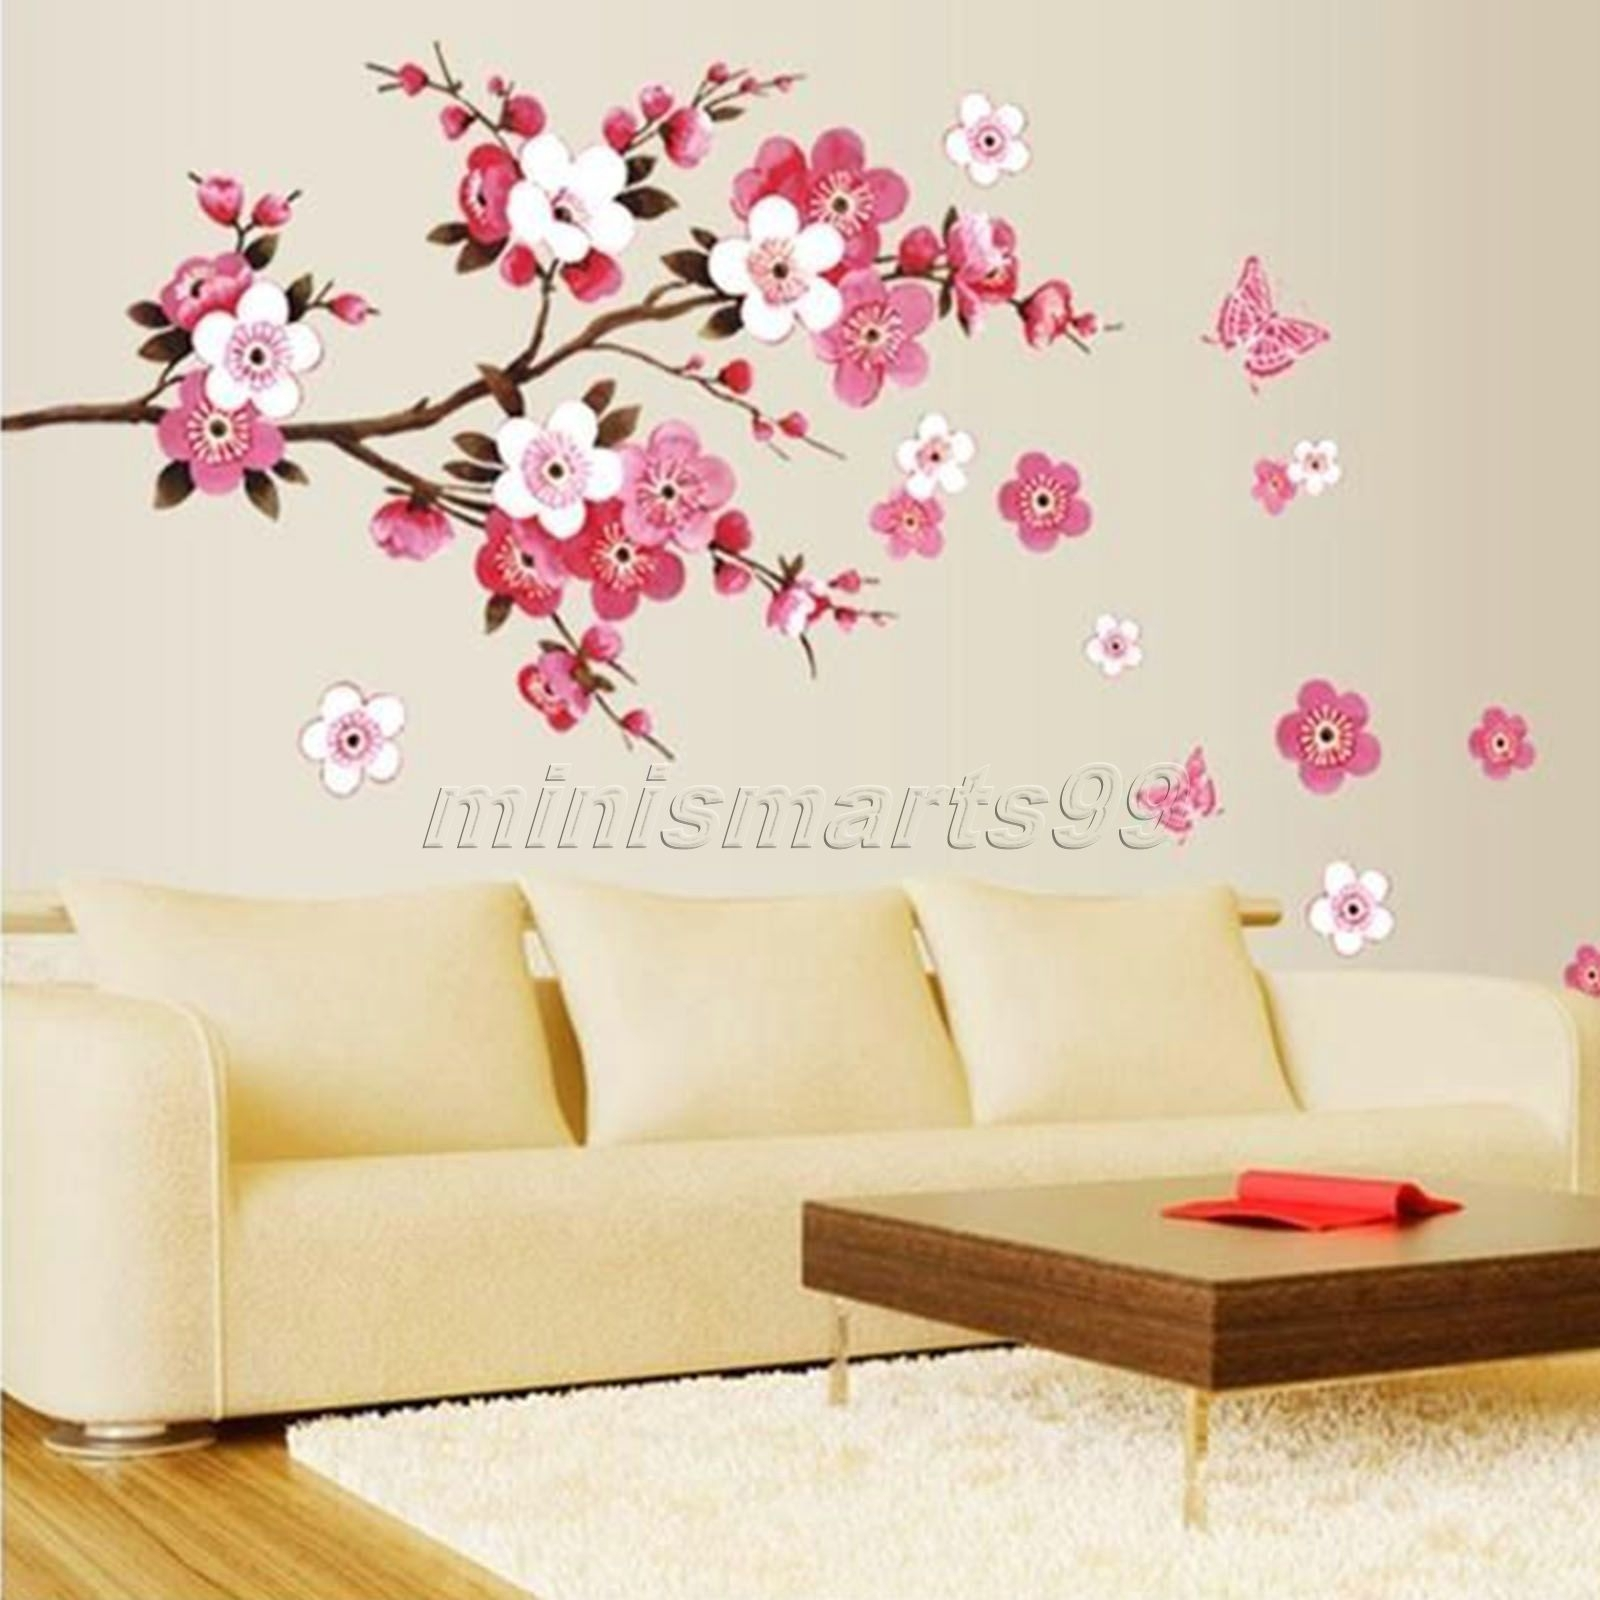 Sakura Flower Butterfly Cherry Blossom Wall Decal Nursery Tree throughout Cherry Blossom Wall Art (Image 16 of 20)